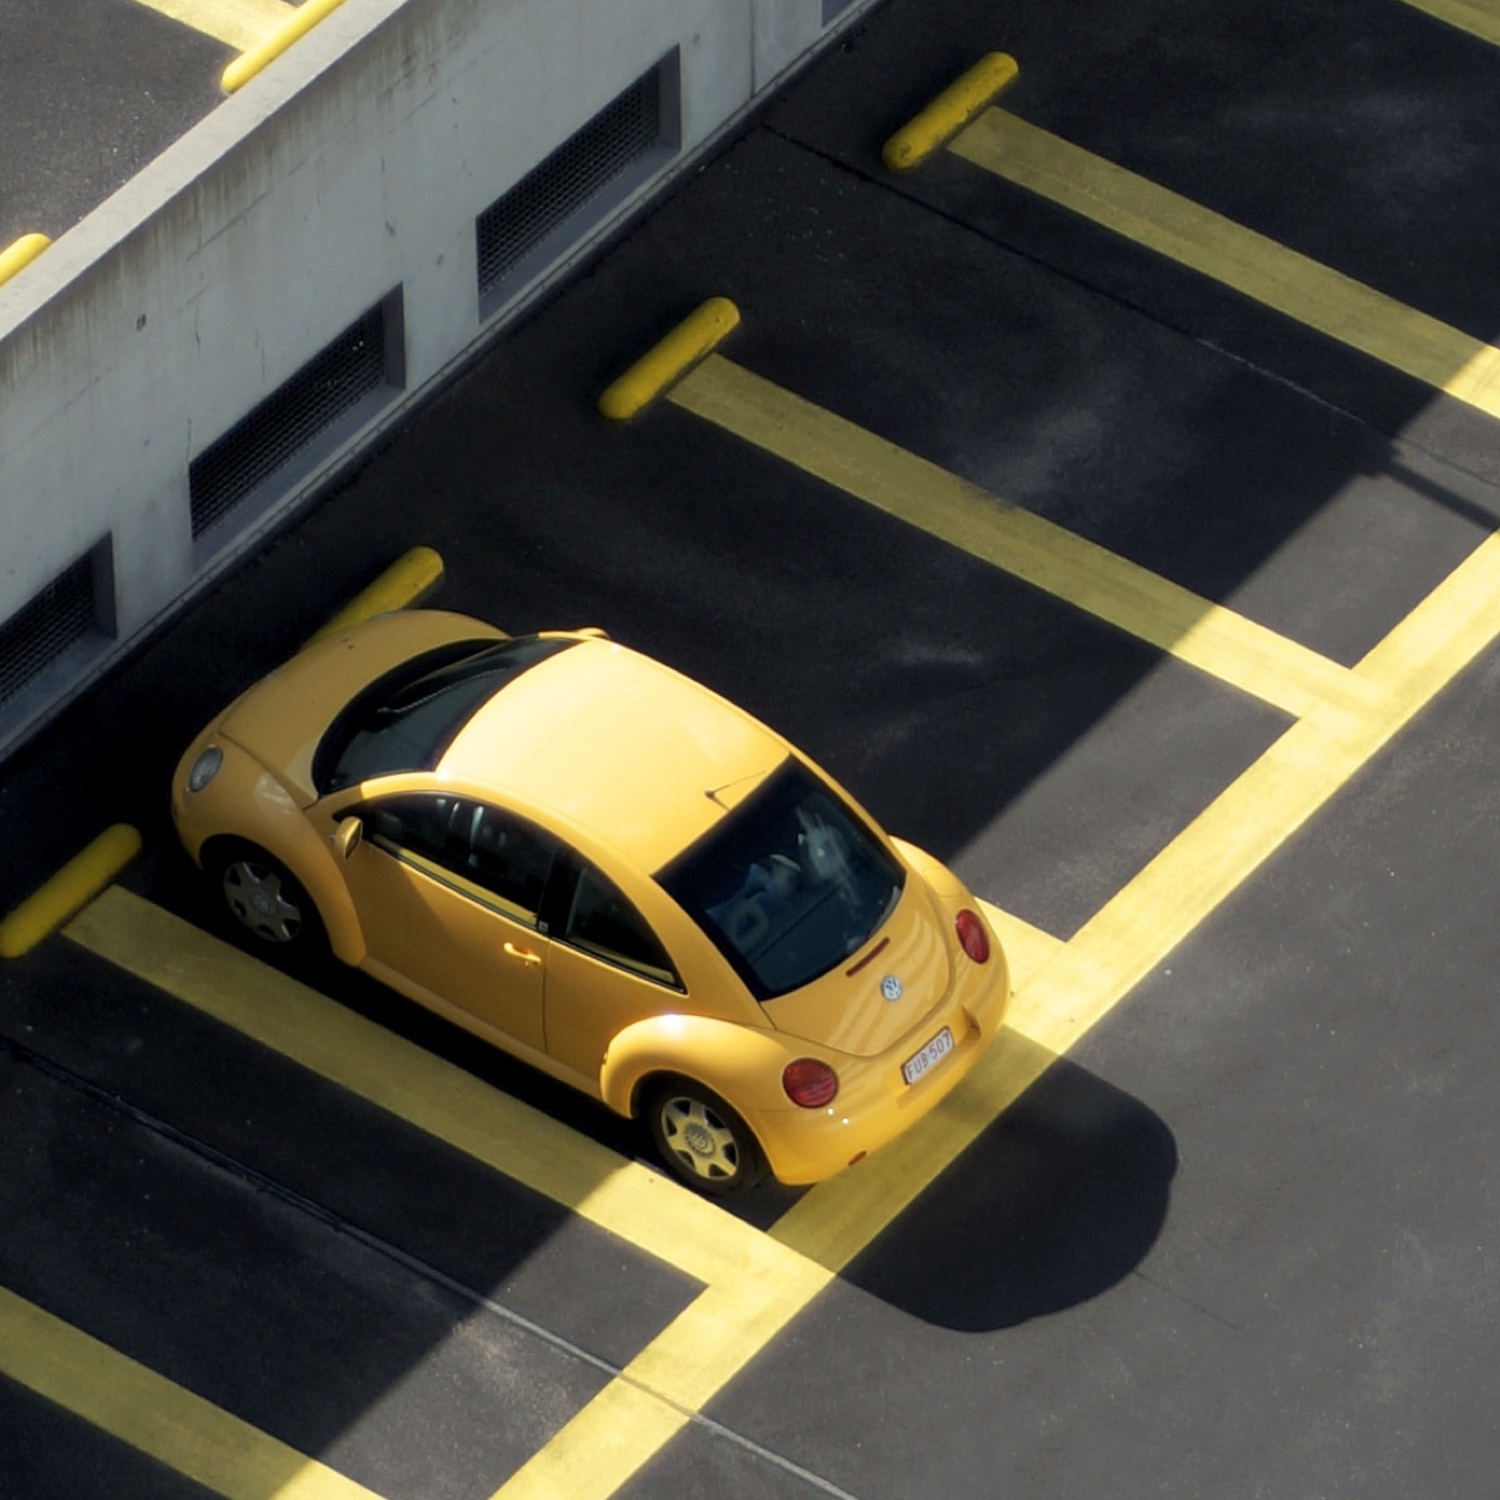 Parking Spots in Aberdeen photo by Raban Haaijk